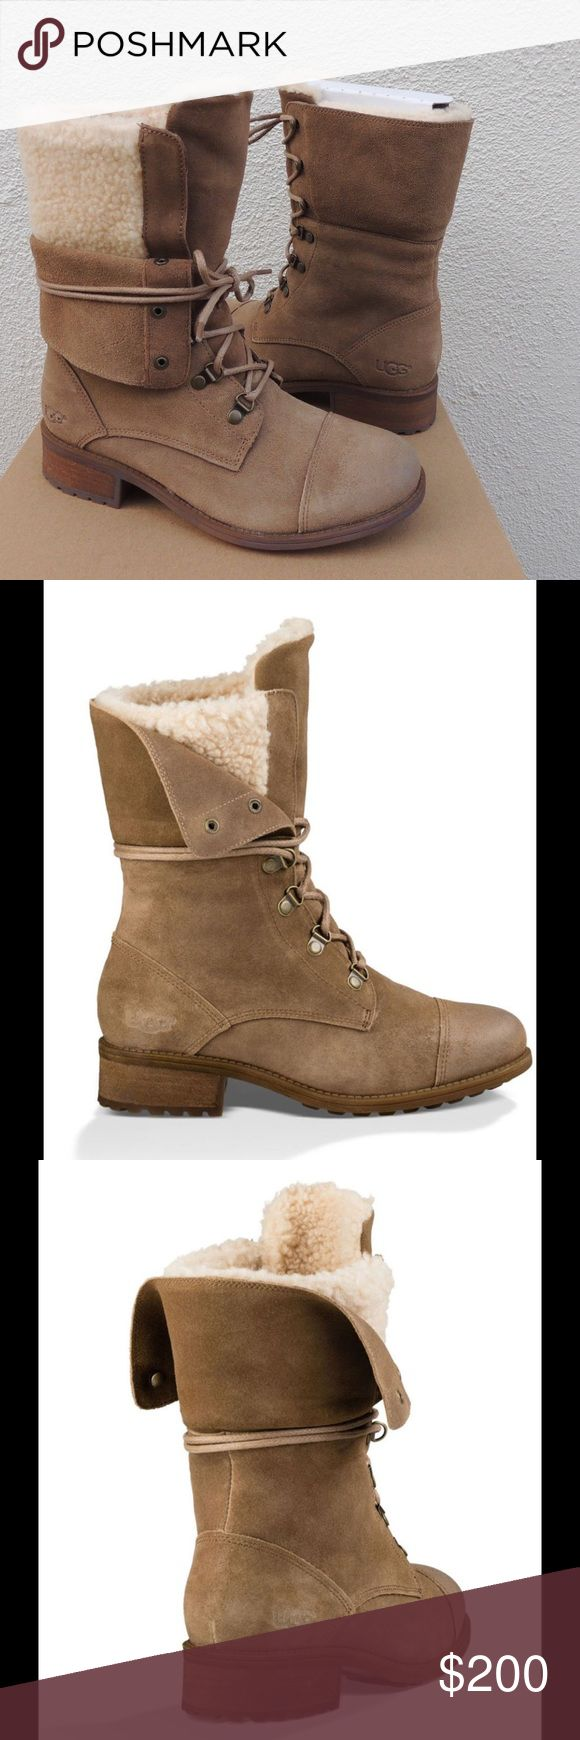 """UGG Gradin Mid Calf Boots New with box. Never worn. Retail $220. UGG's street-meets-military lace-up booties, insulated by a layer of wool that adds warmth without sacrificing style. Foldable collar. Dark Chestnut color. 1.5"""" heel. 8"""" shaft height and 11"""" circumference. Size 6.5. No models/trades. Reasonable offers welcome via offer button. UGG Shoes Winter & Rain Boots"""